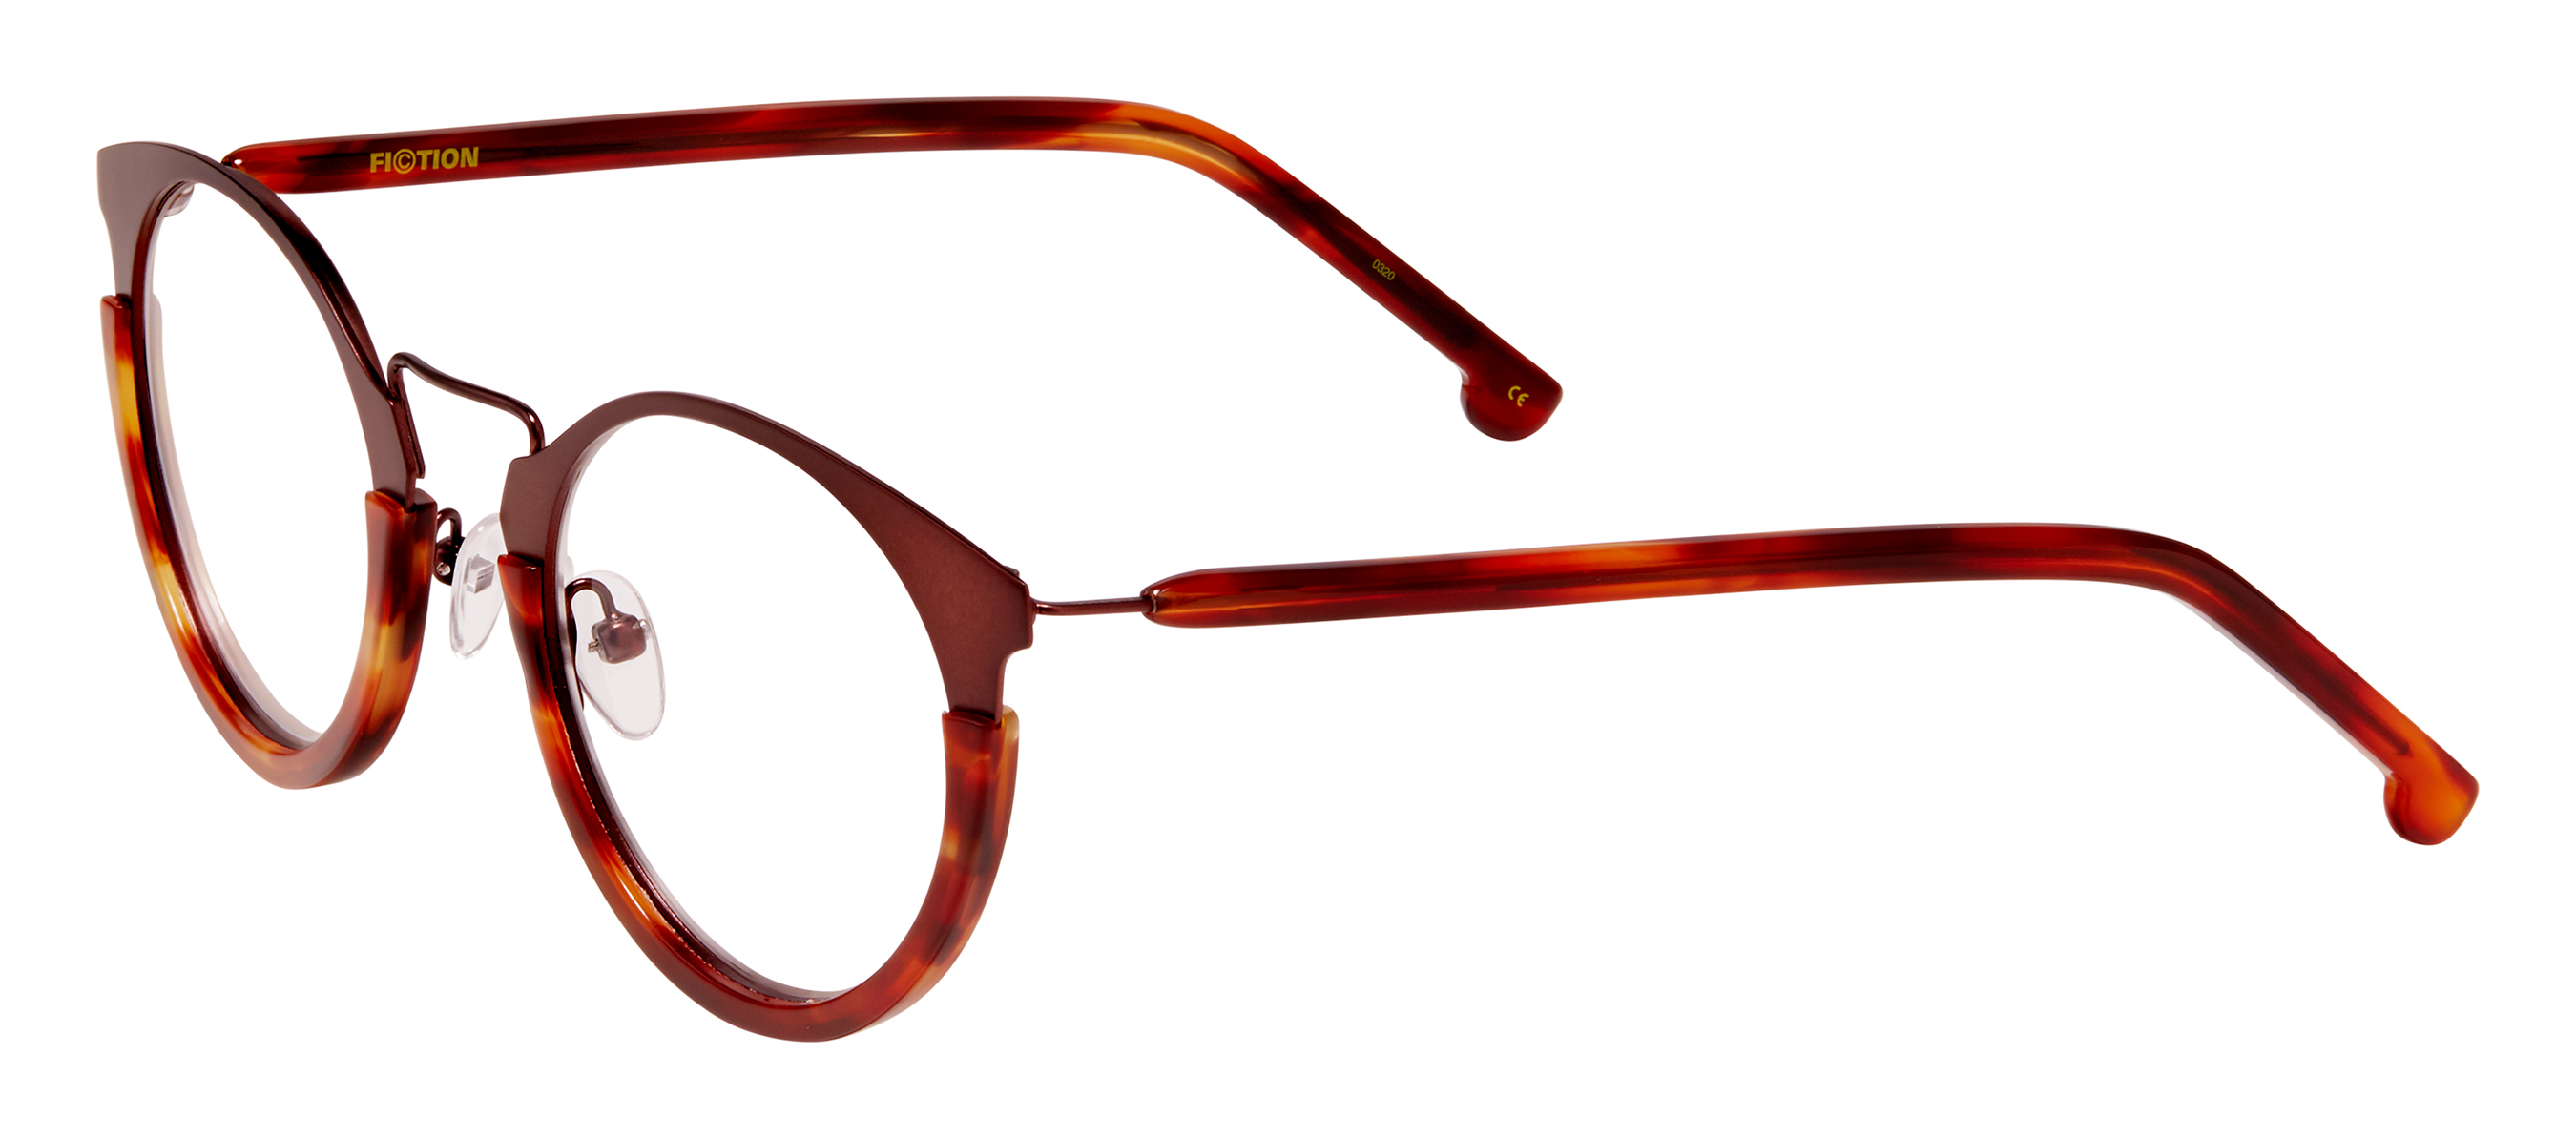 PARK - BNVT Dark Brown with Vineyard Tortoise